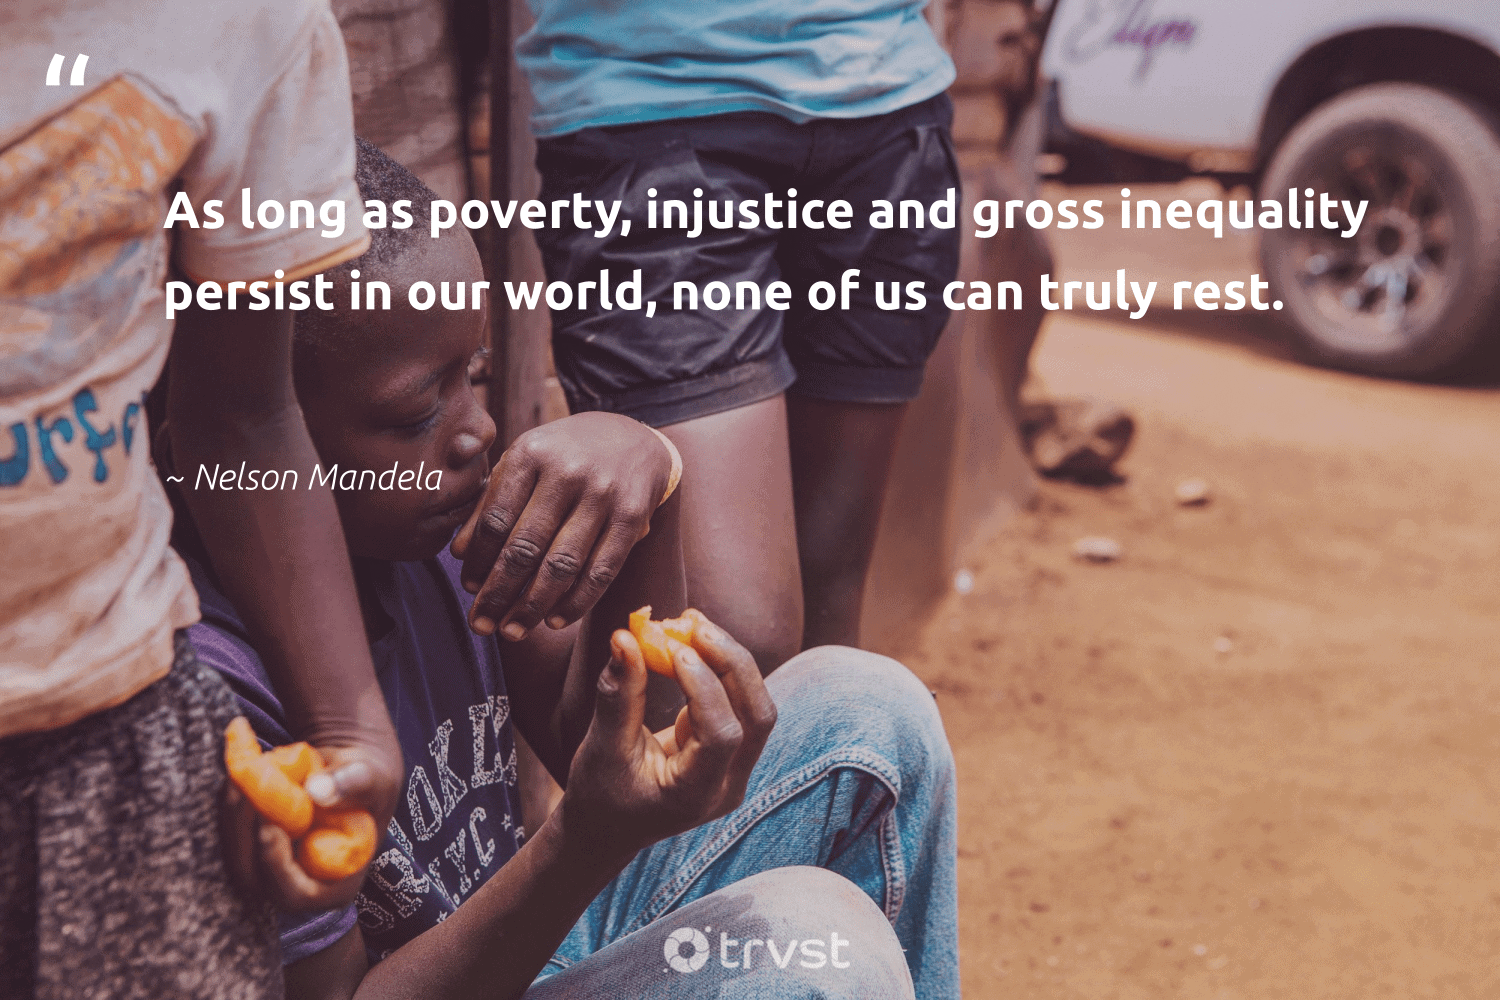 """""""As long as poverty, injustice and gross inequality persist in our world, none of us can truly rest.""""  - Nelson Mandela #trvst #quotes #poverty #endpoverty #weareallone #equalrights #dogood #sustainablefutures #makeadifference #socialimpact #inclusion #equalopportunity"""